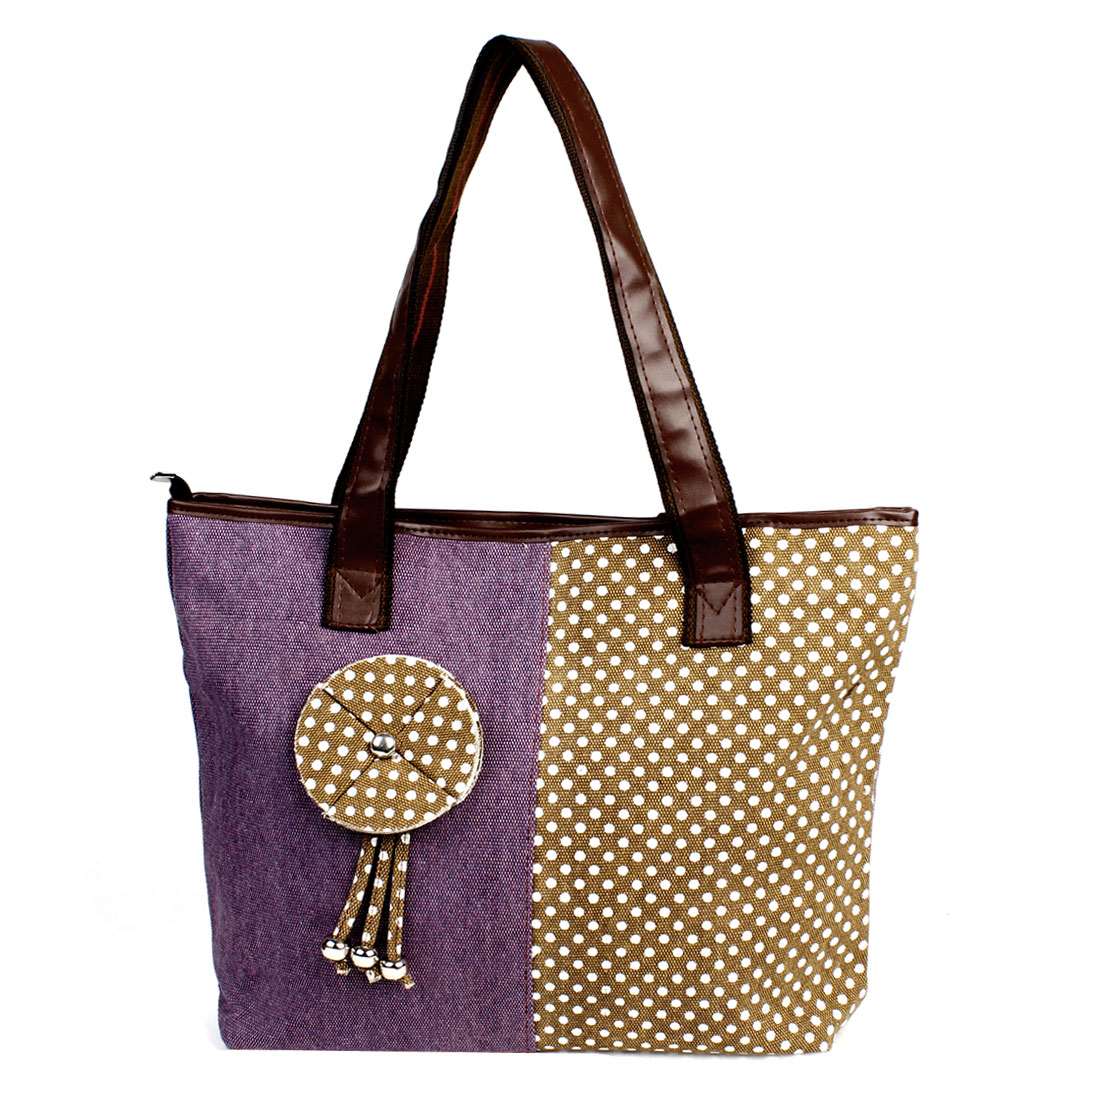 Dots Pattern Floral Decor Zipper Closure Handbag Tote Bag Purple Brown for Lady